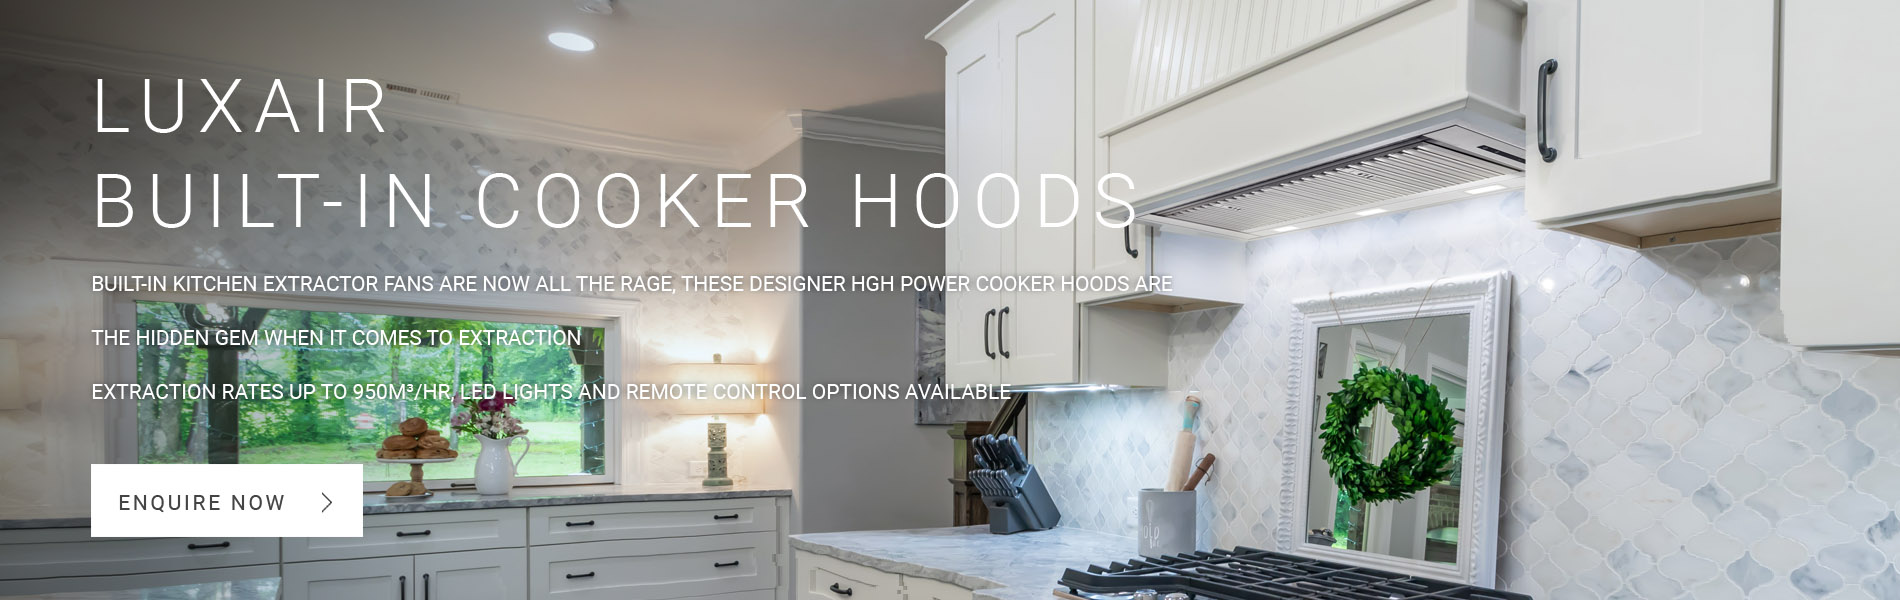 Built-In Cooker Hoods